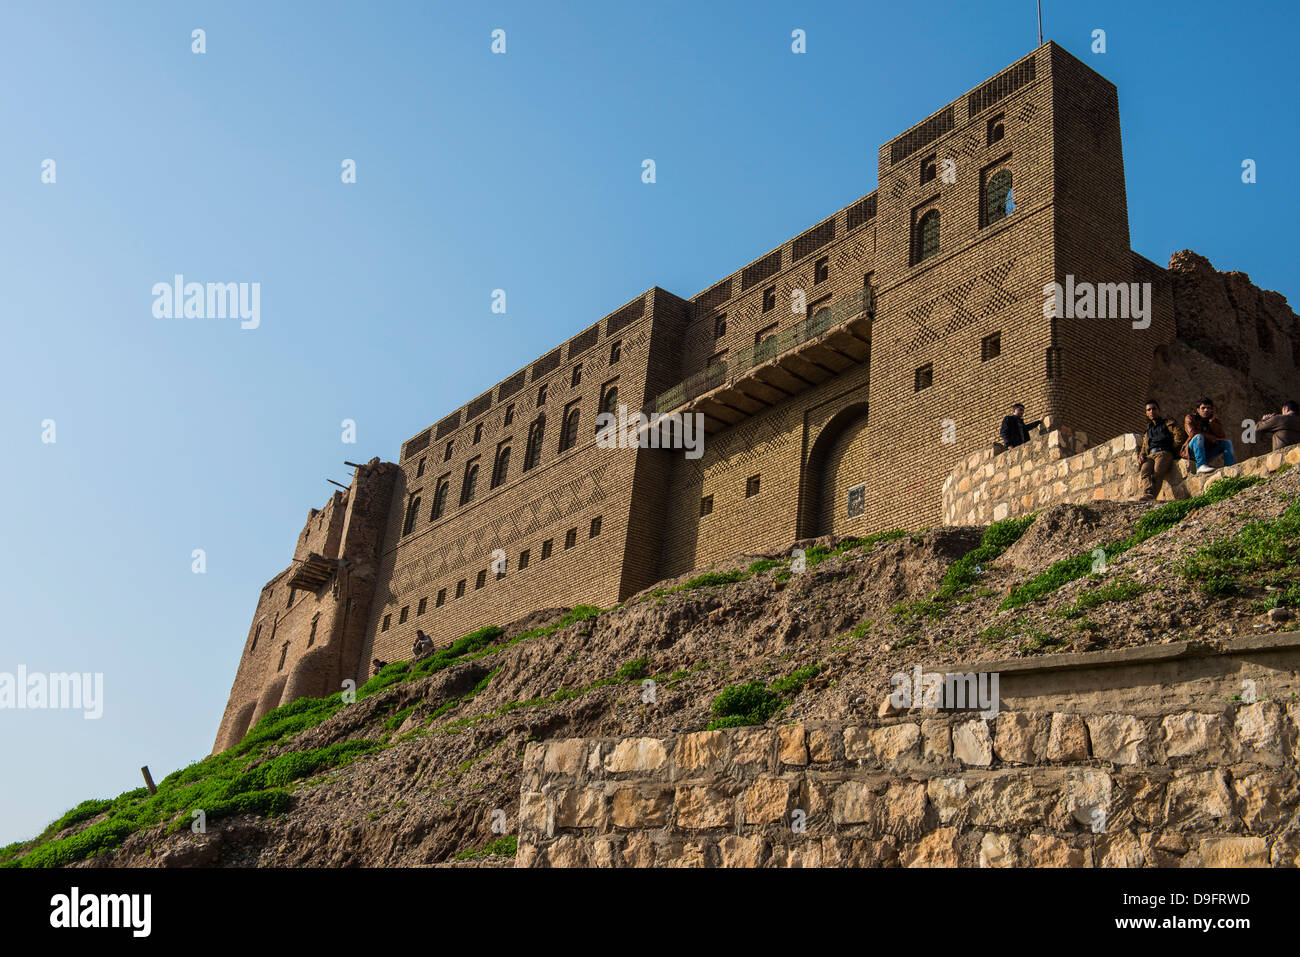 The citadel of Erbil (Hawler), capital of Iraq Kurdistan, Iraq, Middle East - Stock Image